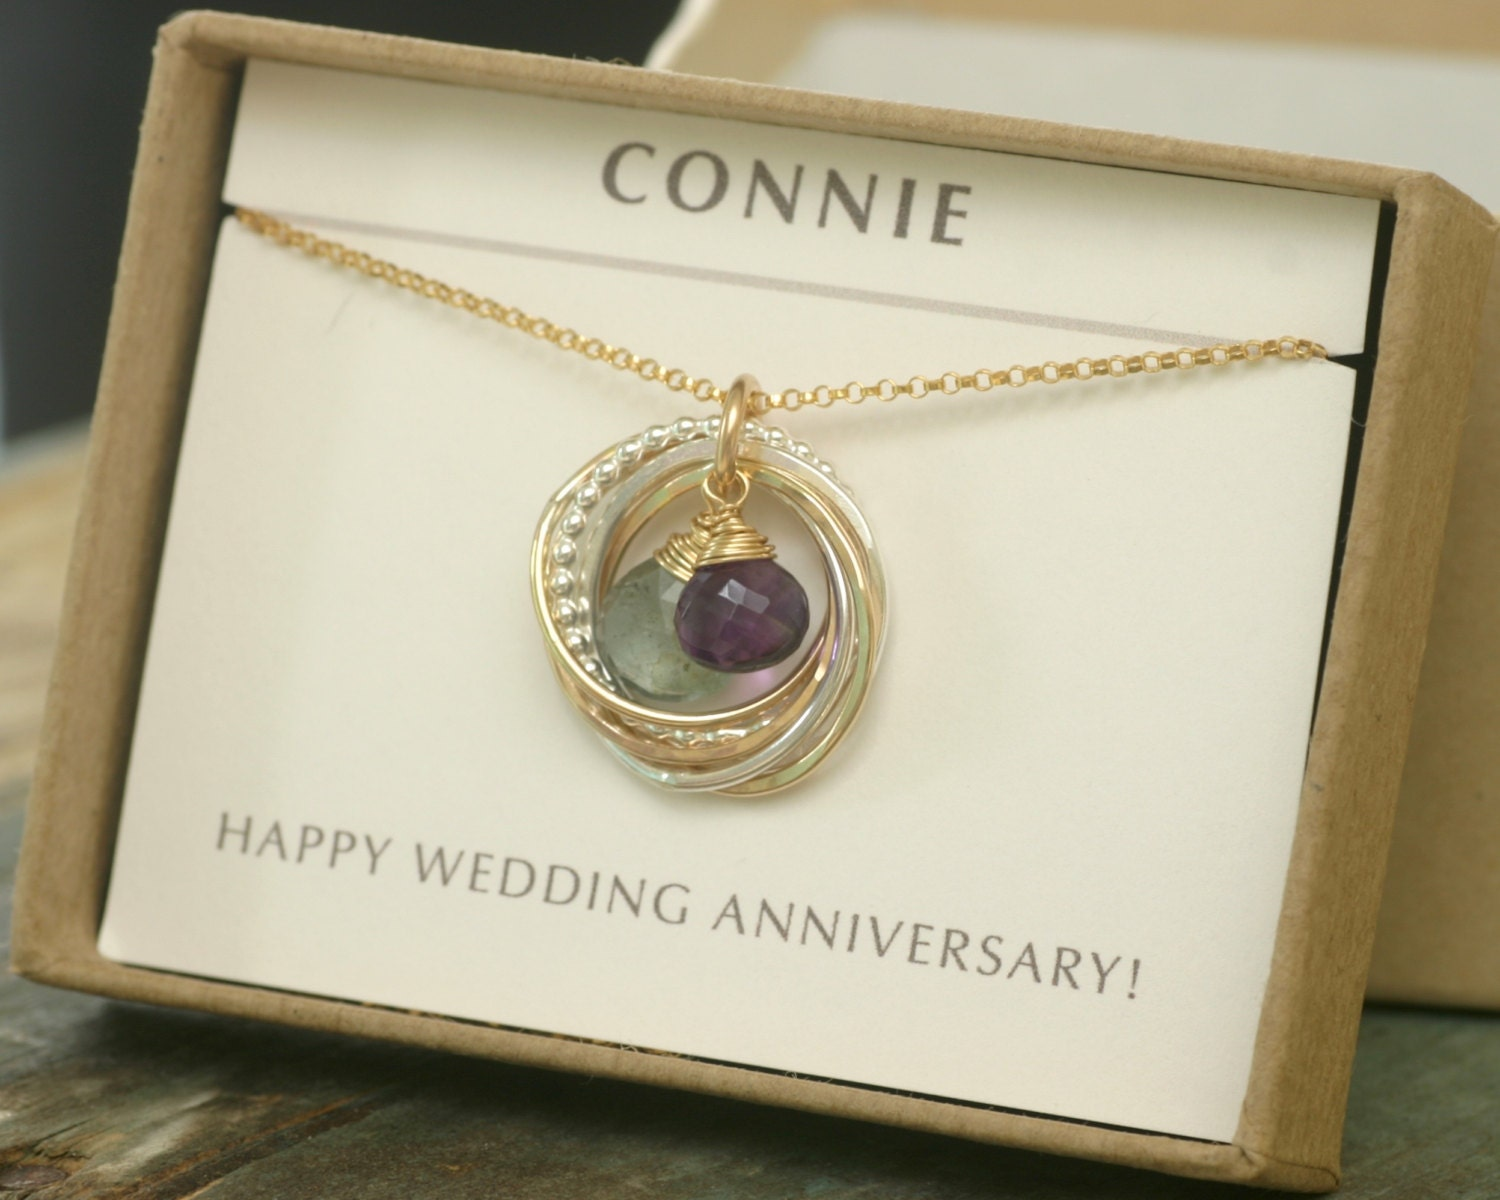 Six Year Wedding Anniversary Gift Ideas: 6 Year Anniversary Gift For Her 60th Wedding Anniversary